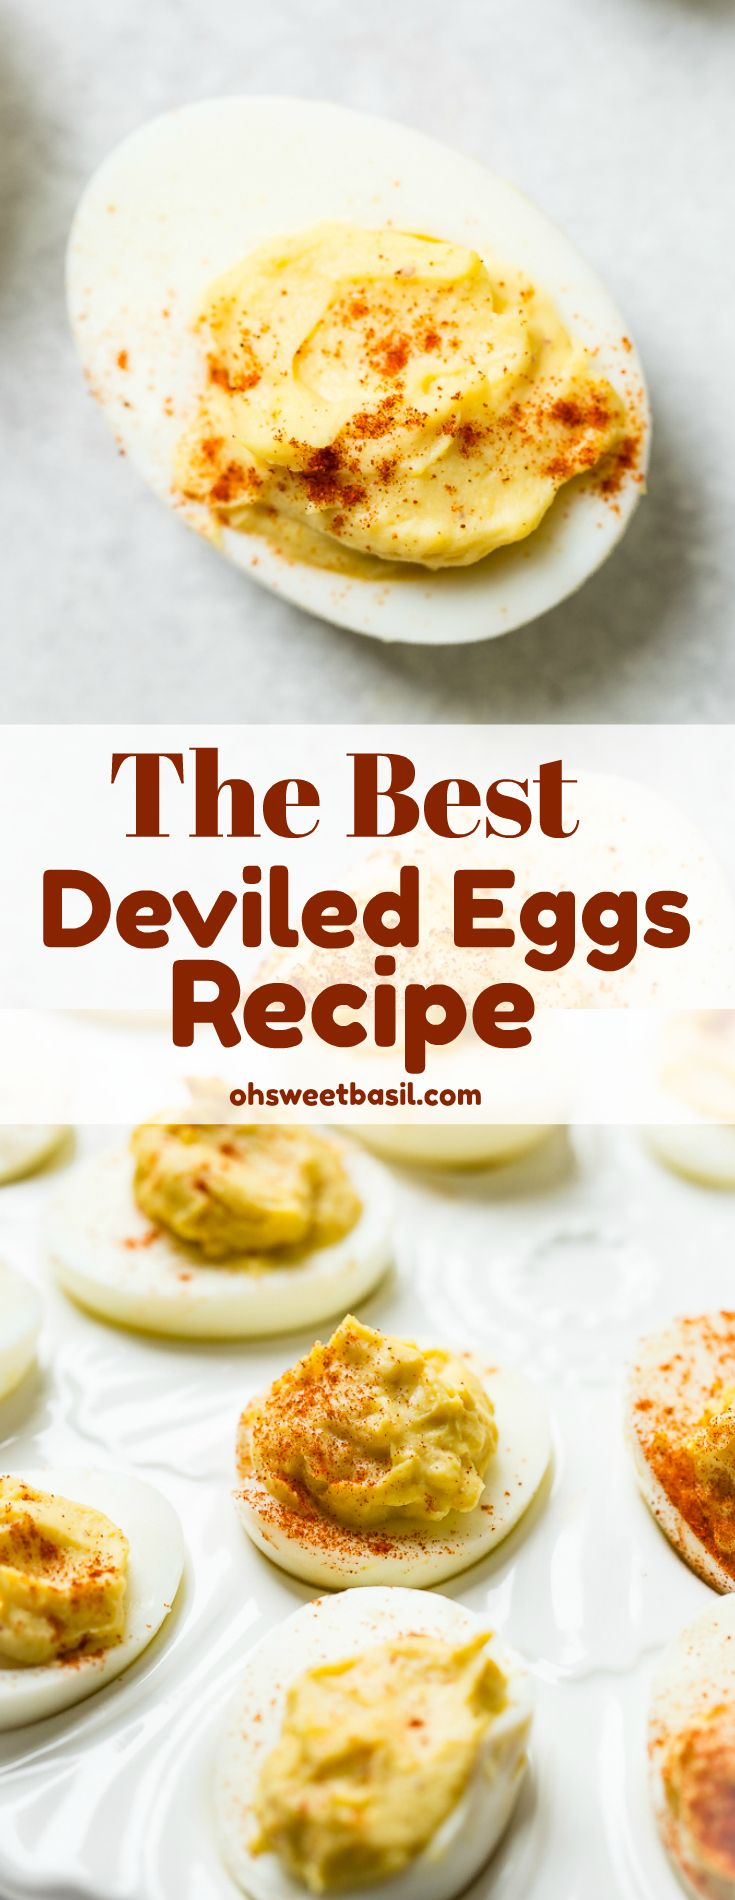 The BEST Deviled Eggs Recipe (So Easy!) - Oh Sweet Basil